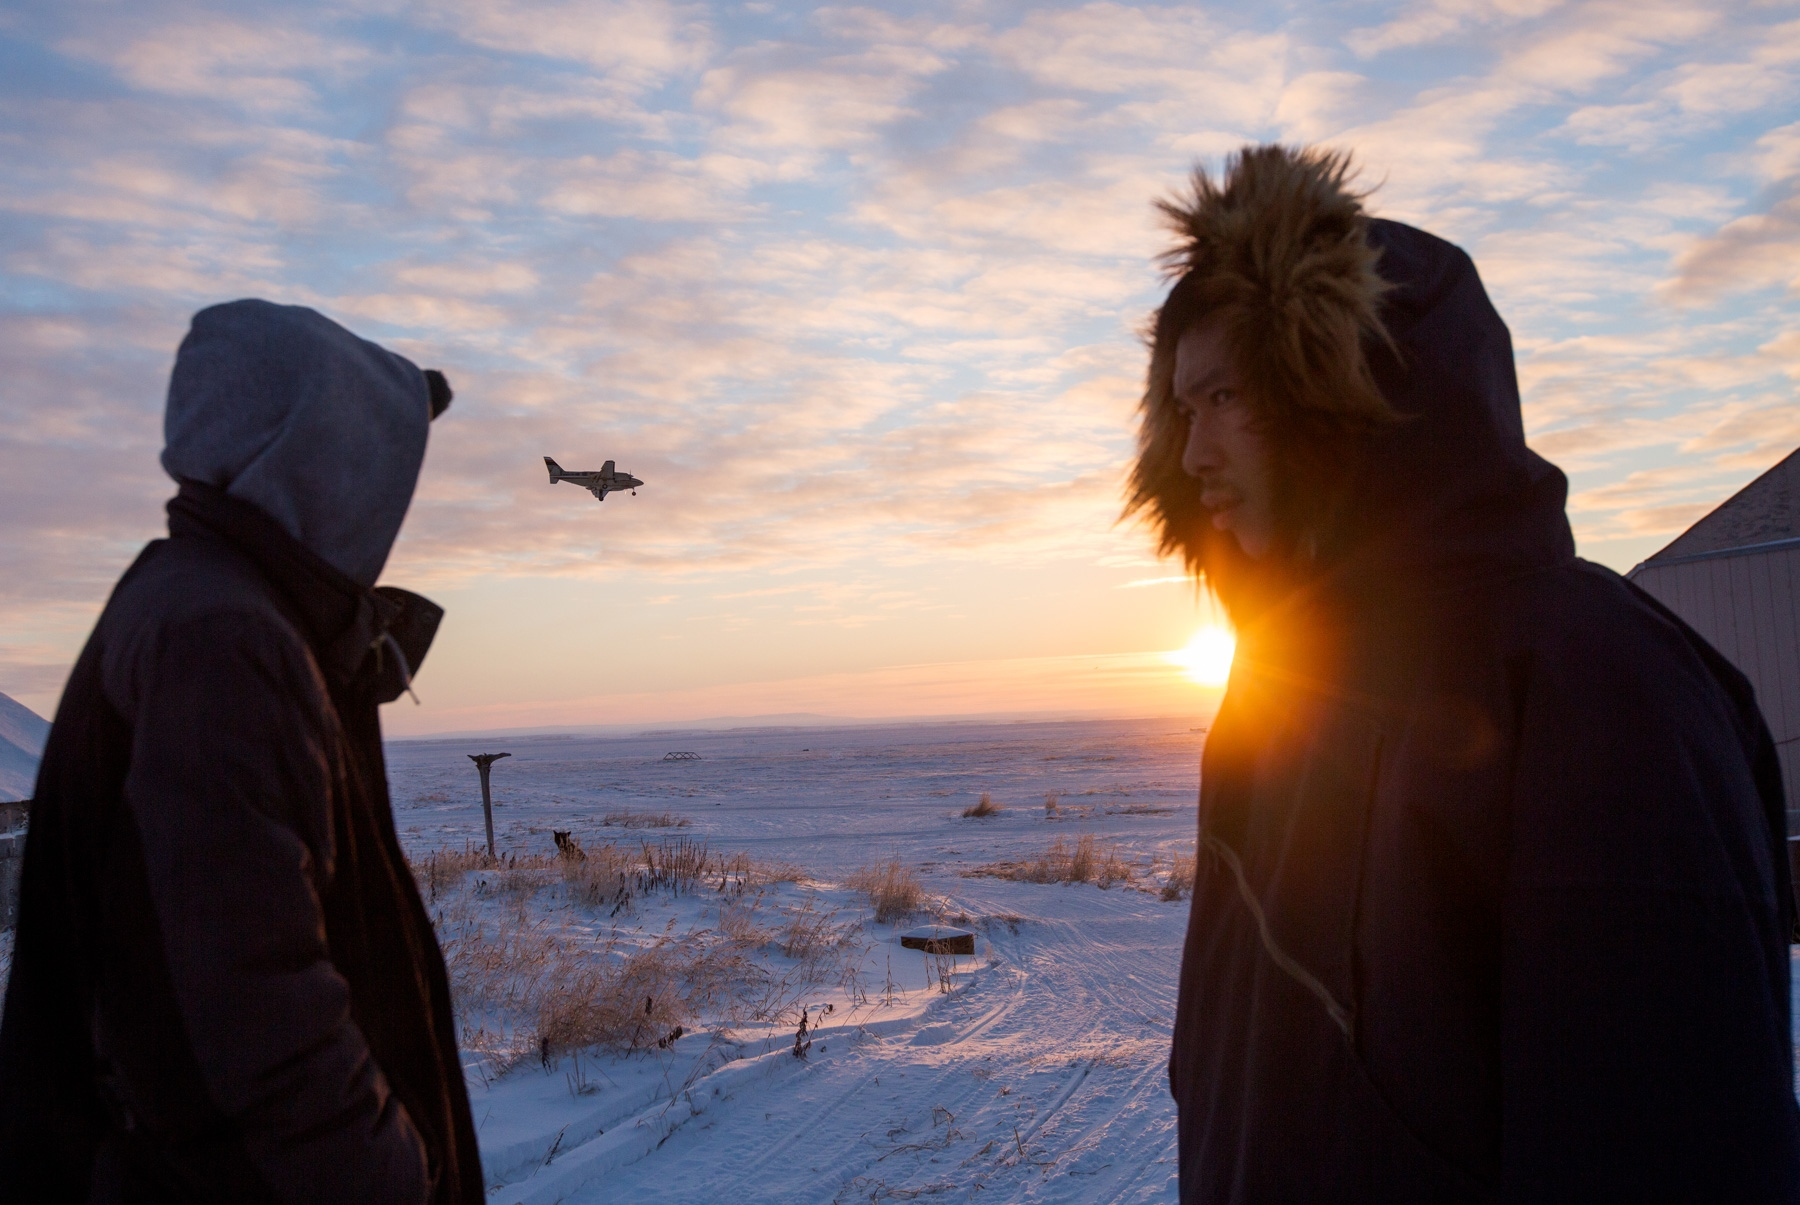 Andrew Ningealook, left, and his cousin Thomas Eningowuk speak together while a twin-engine plane makes its final approach before landing at the Shishmaref airport.